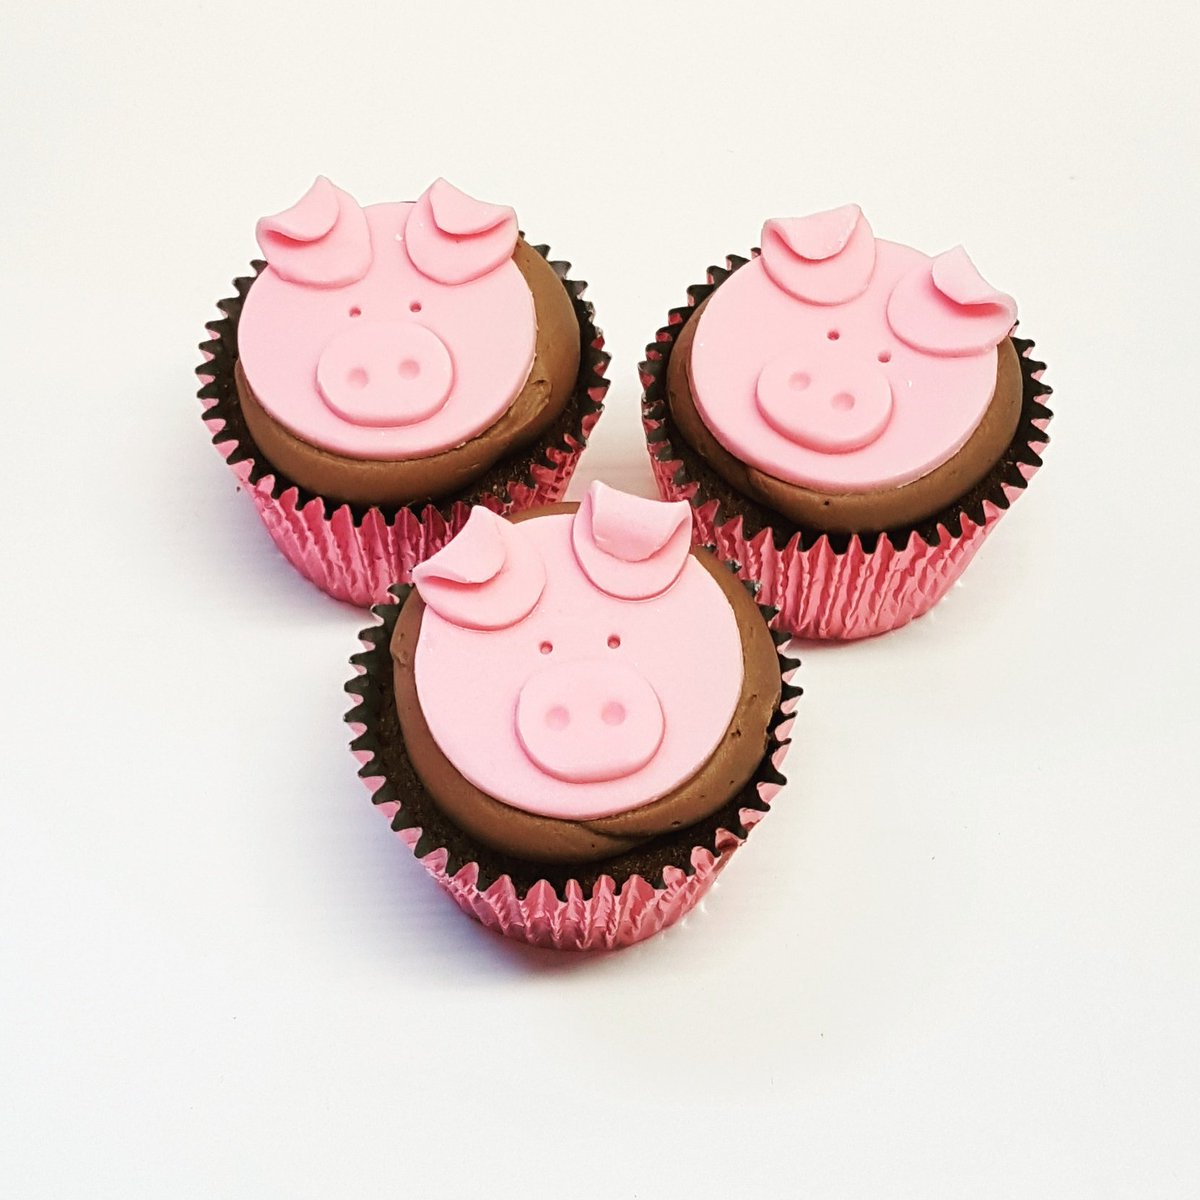 We Catered A 2nd Birthday Party With Farm Theme Today These Piggie Cupcakes And Sheep Biscuits Were The Finishing Touches